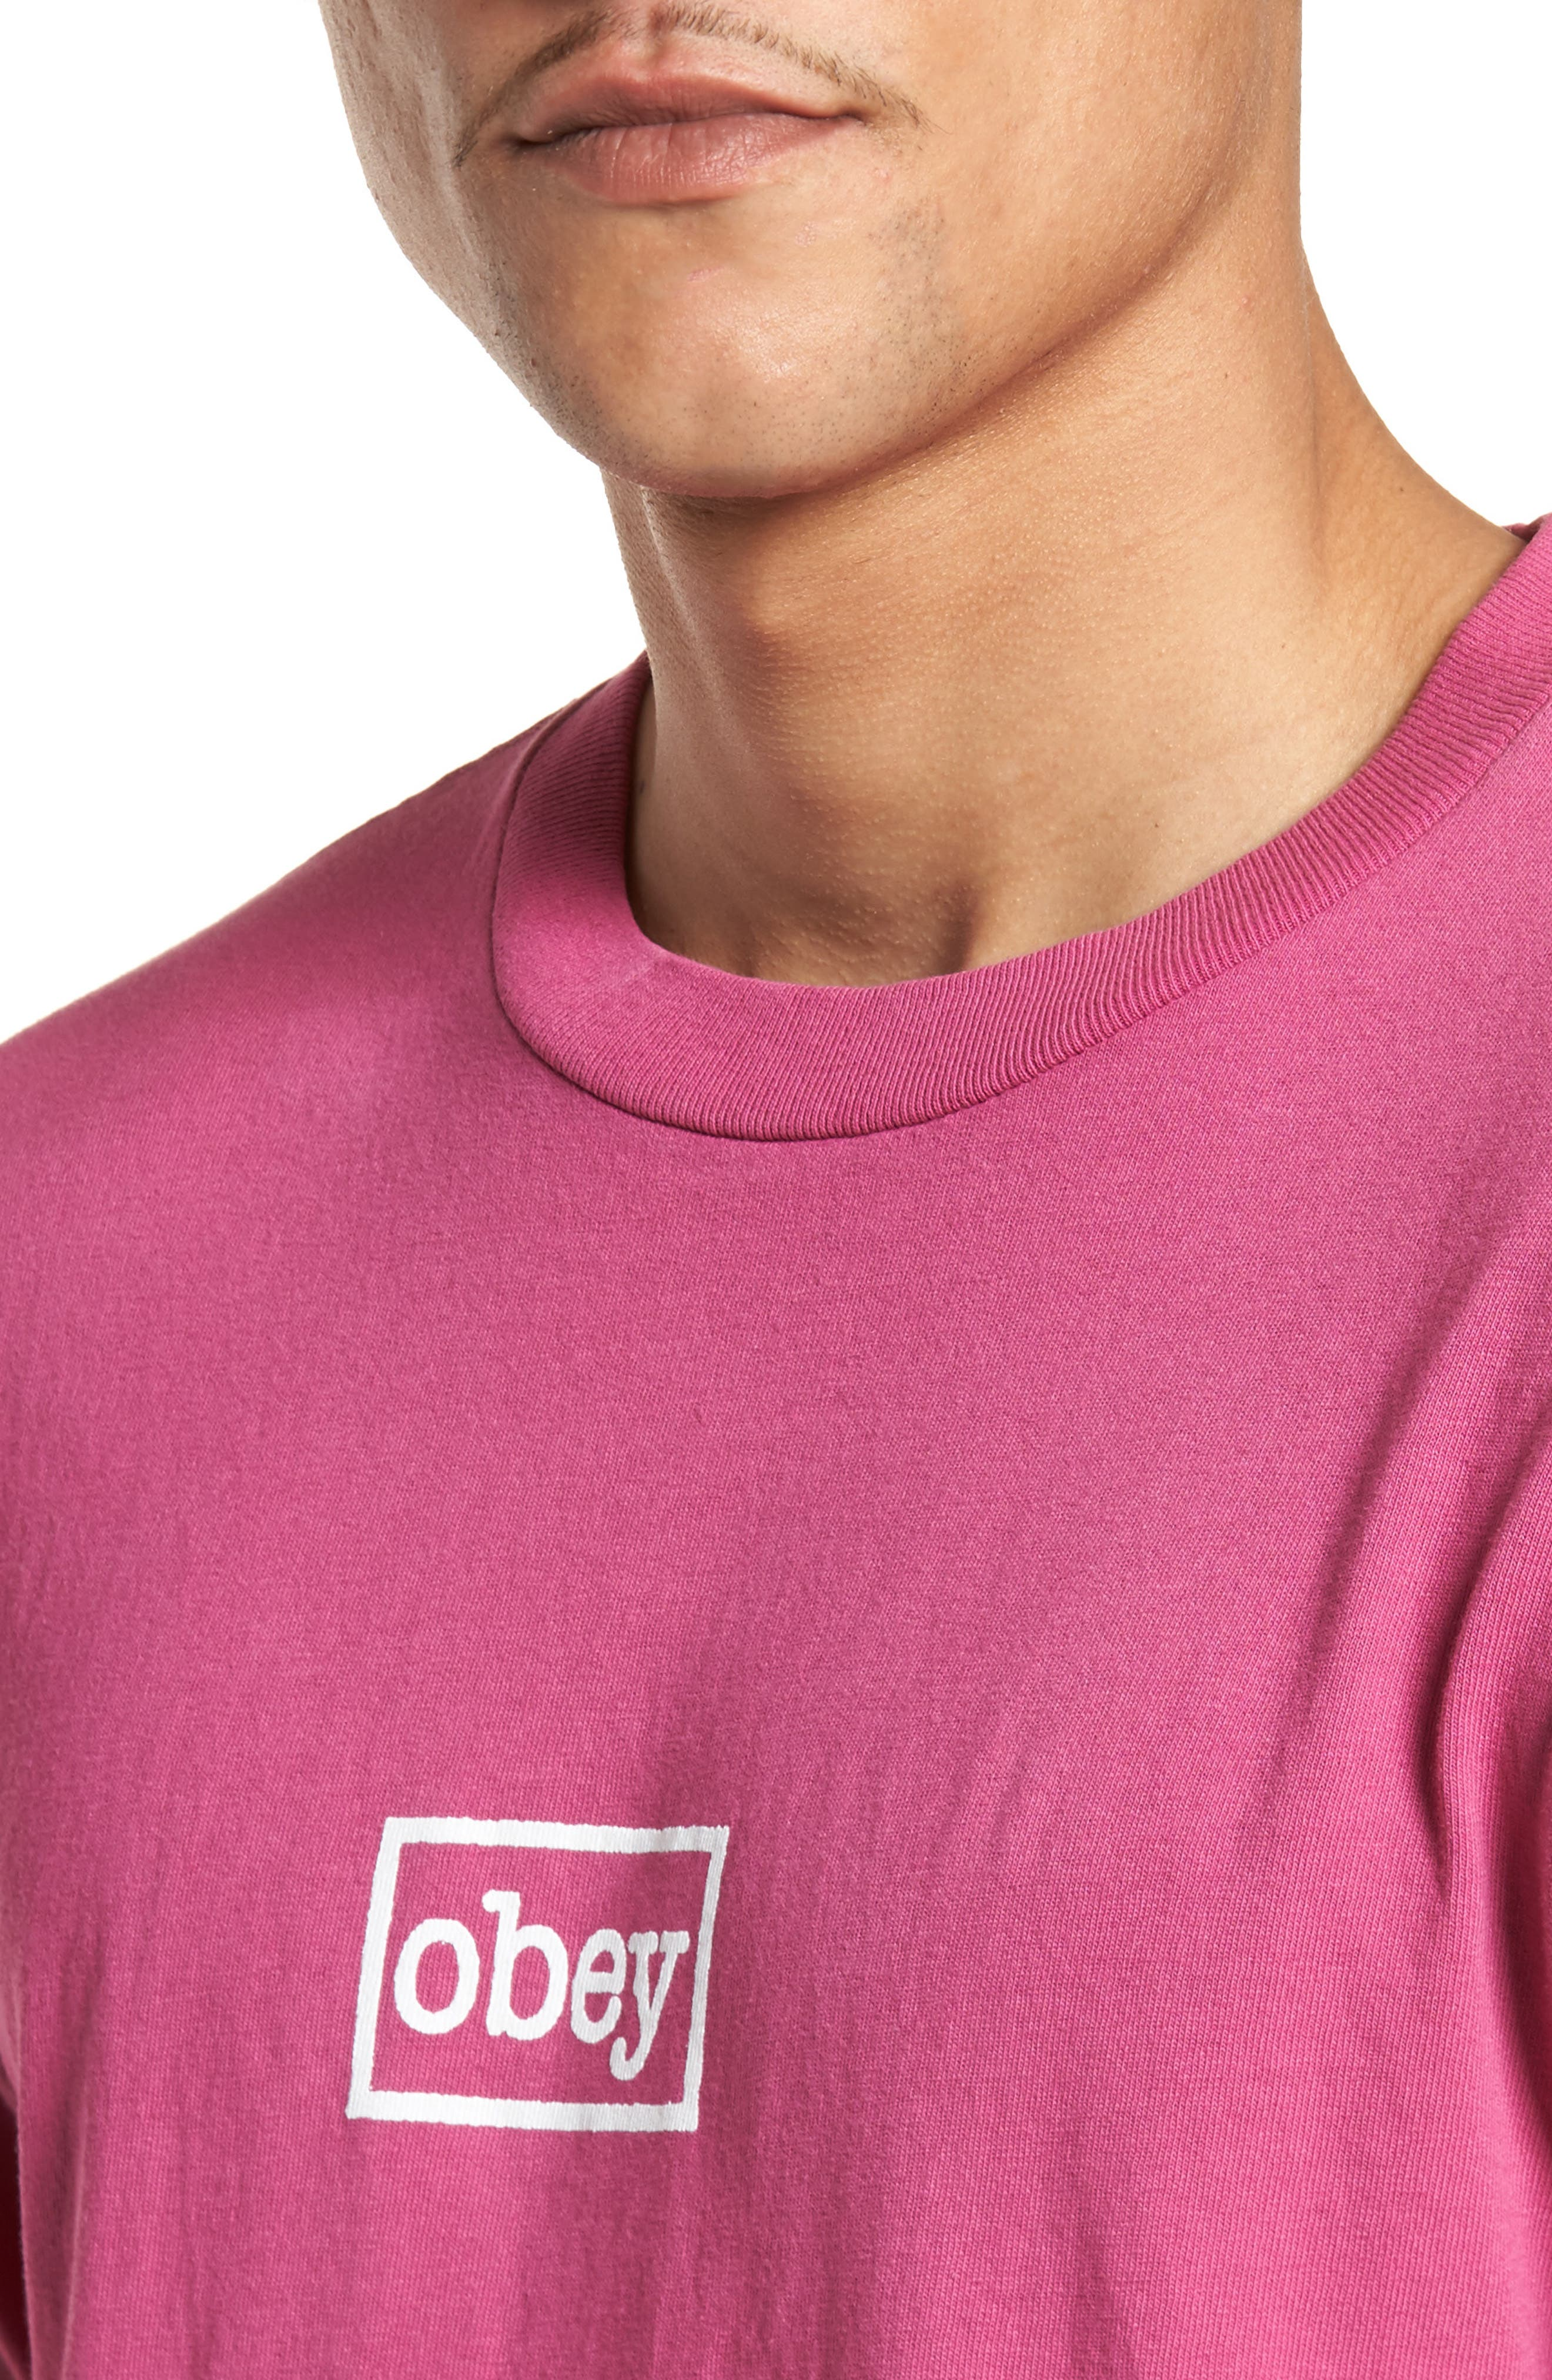 Typewriter Pigment Dyed T-Shirt,                             Alternate thumbnail 4, color,                             Dusty Magenta